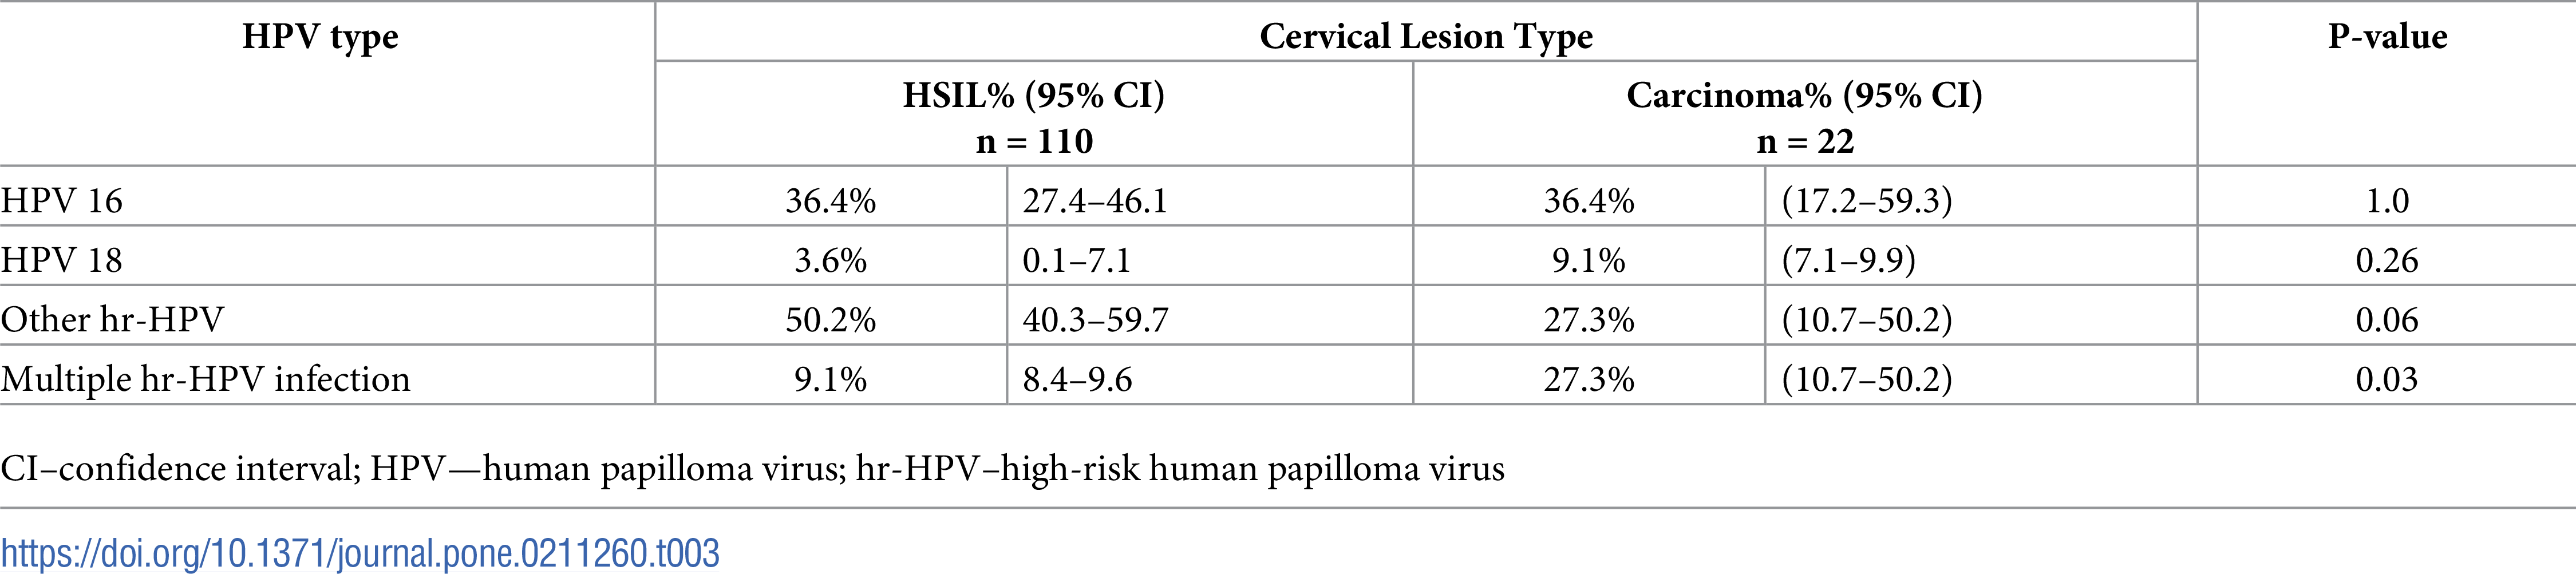 hpv high risk other than 16/ 18